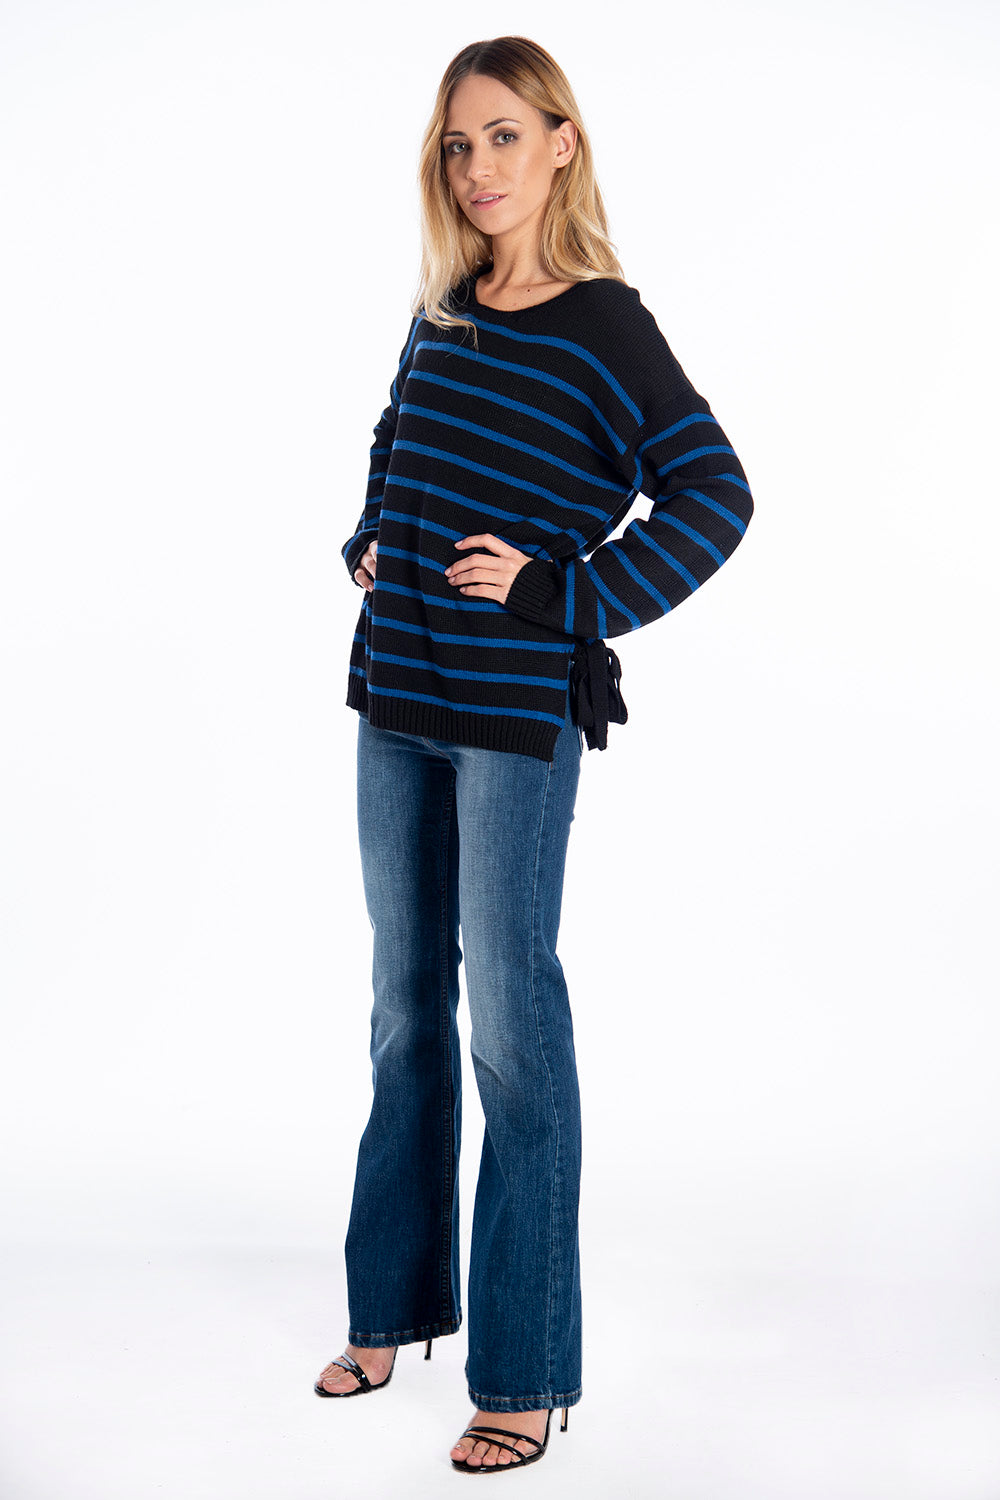 Infinity Knitwear oversized jumper with side ties